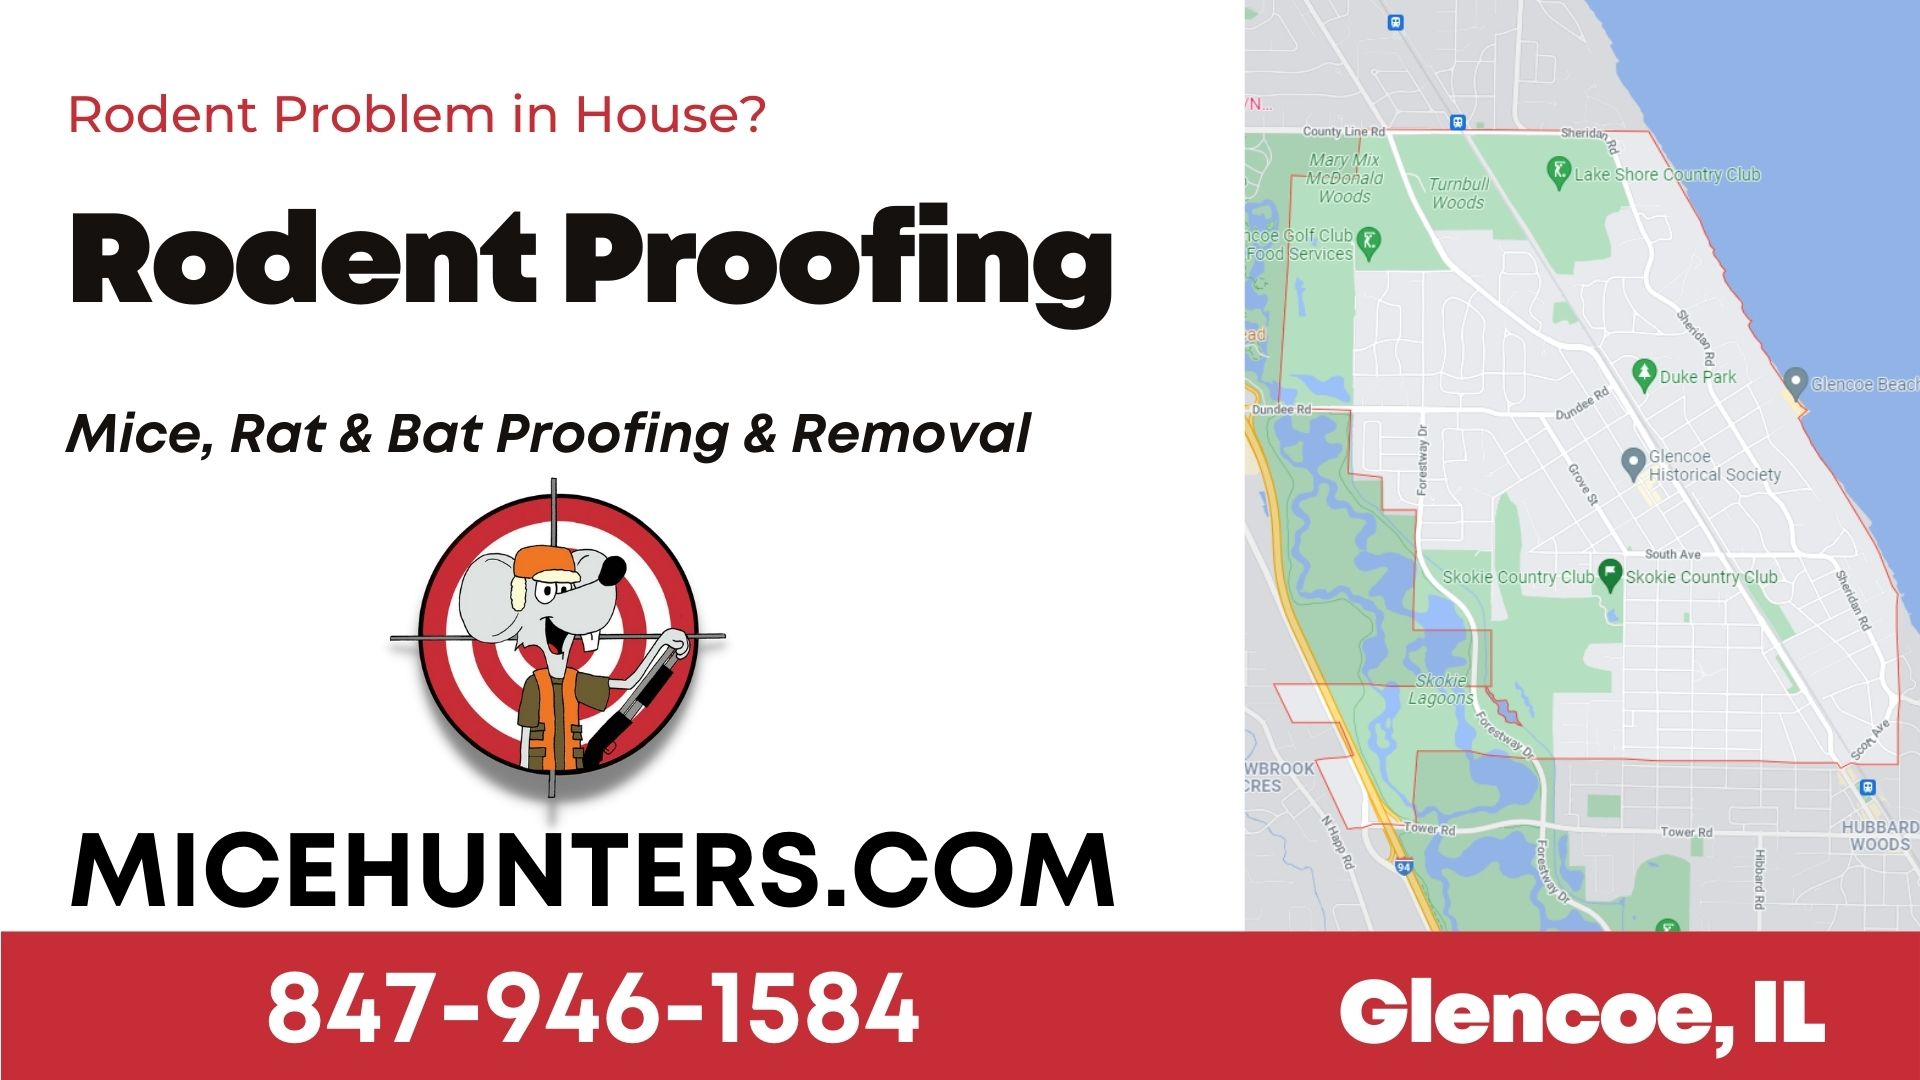 Glencoe Rodent and Mice Proofing Exterminator